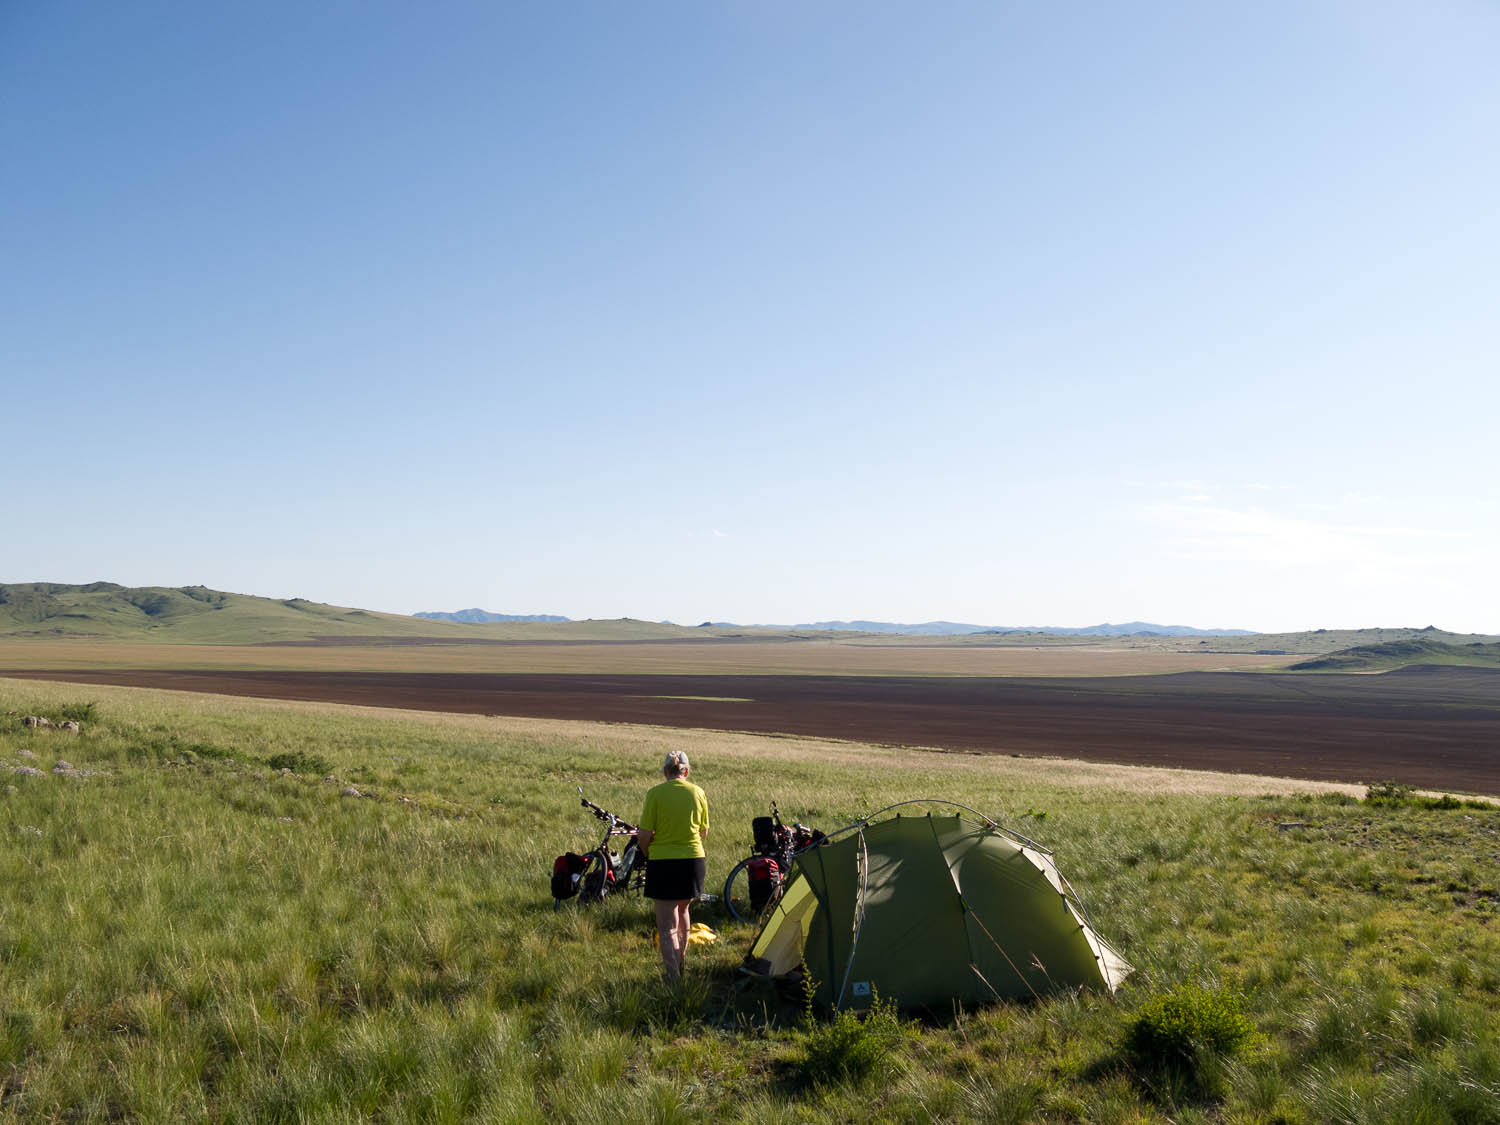 First camp on the rad to Amarbayasgaland